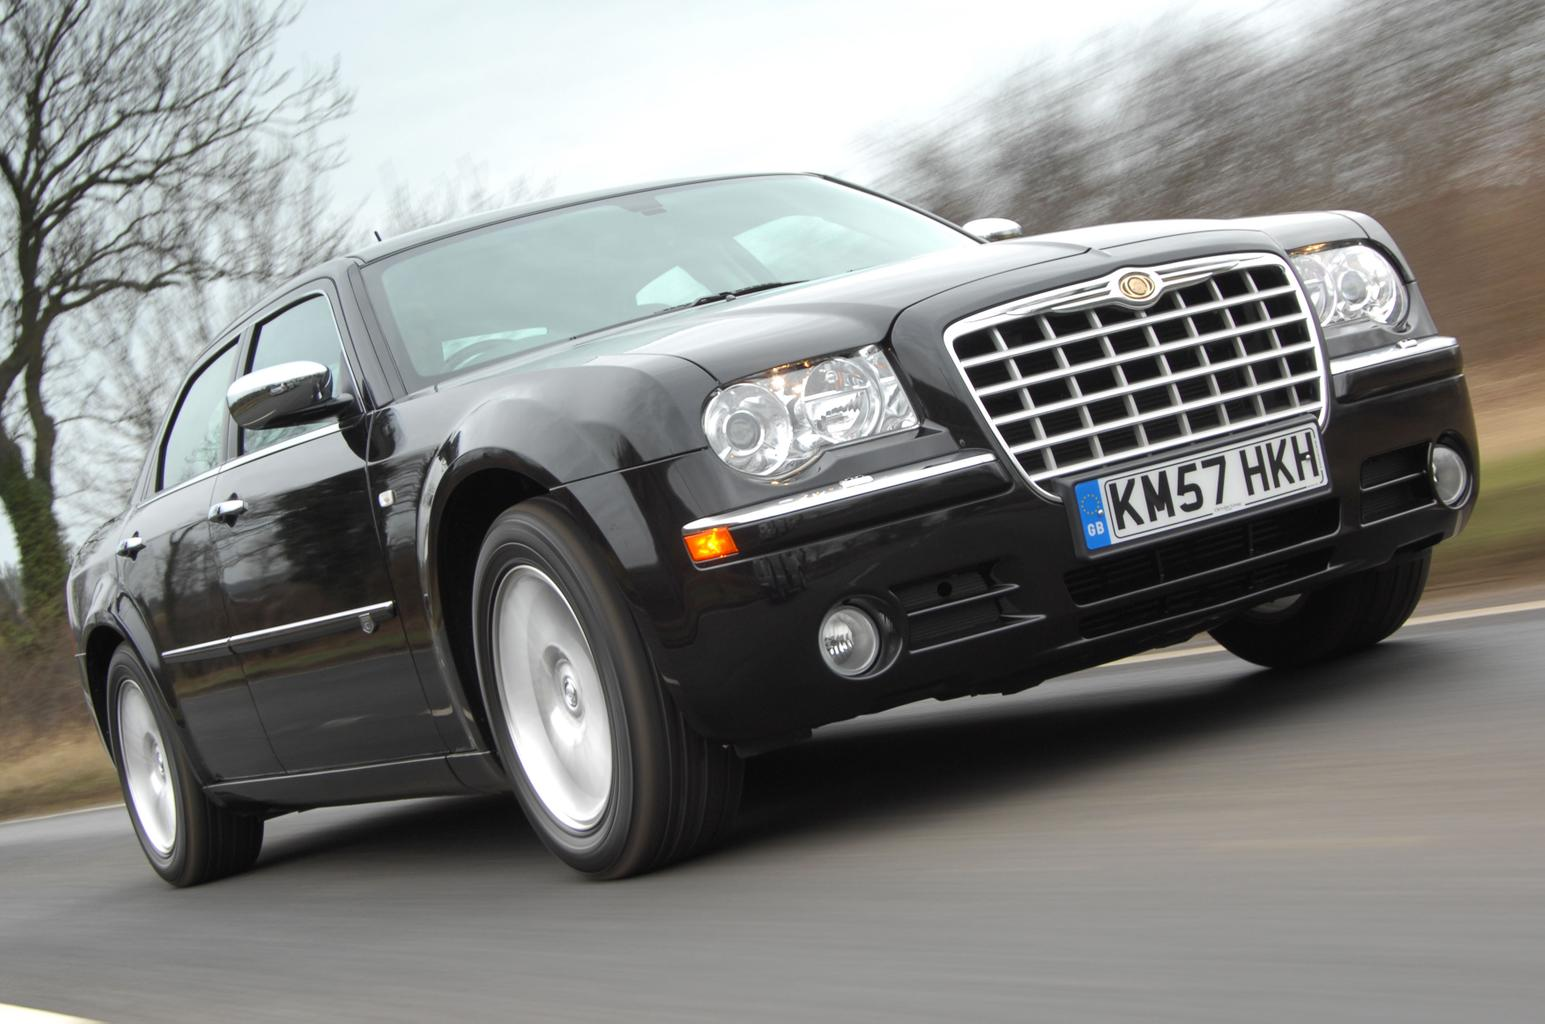 Best used luxury cars for £5000 (and the ones to avoid)